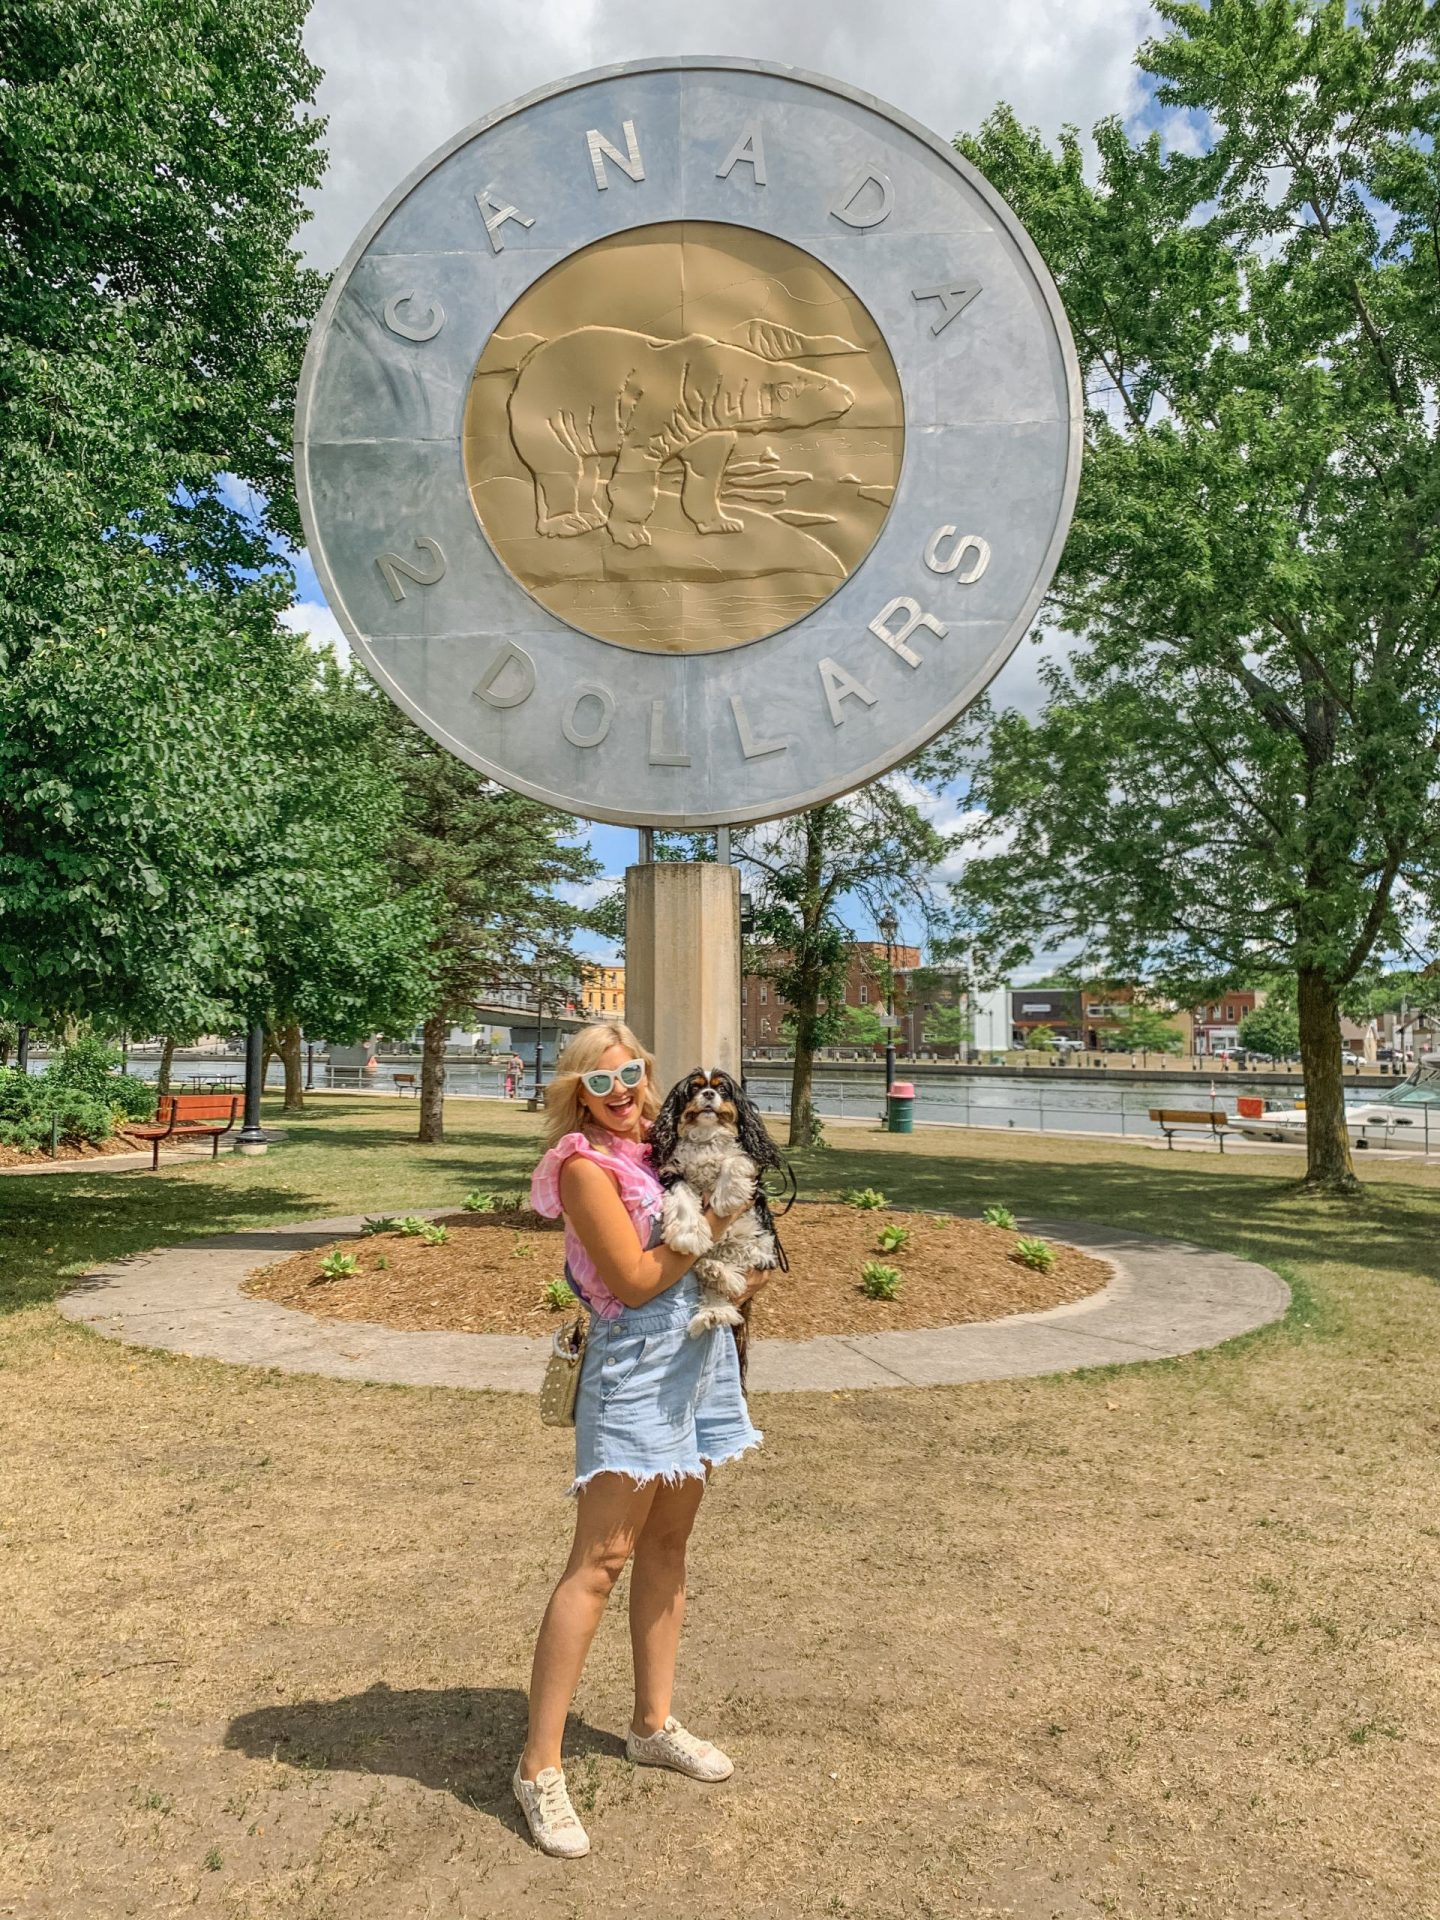 Things to see in Campbellford in Northumberland County include the famous Tooney Statue